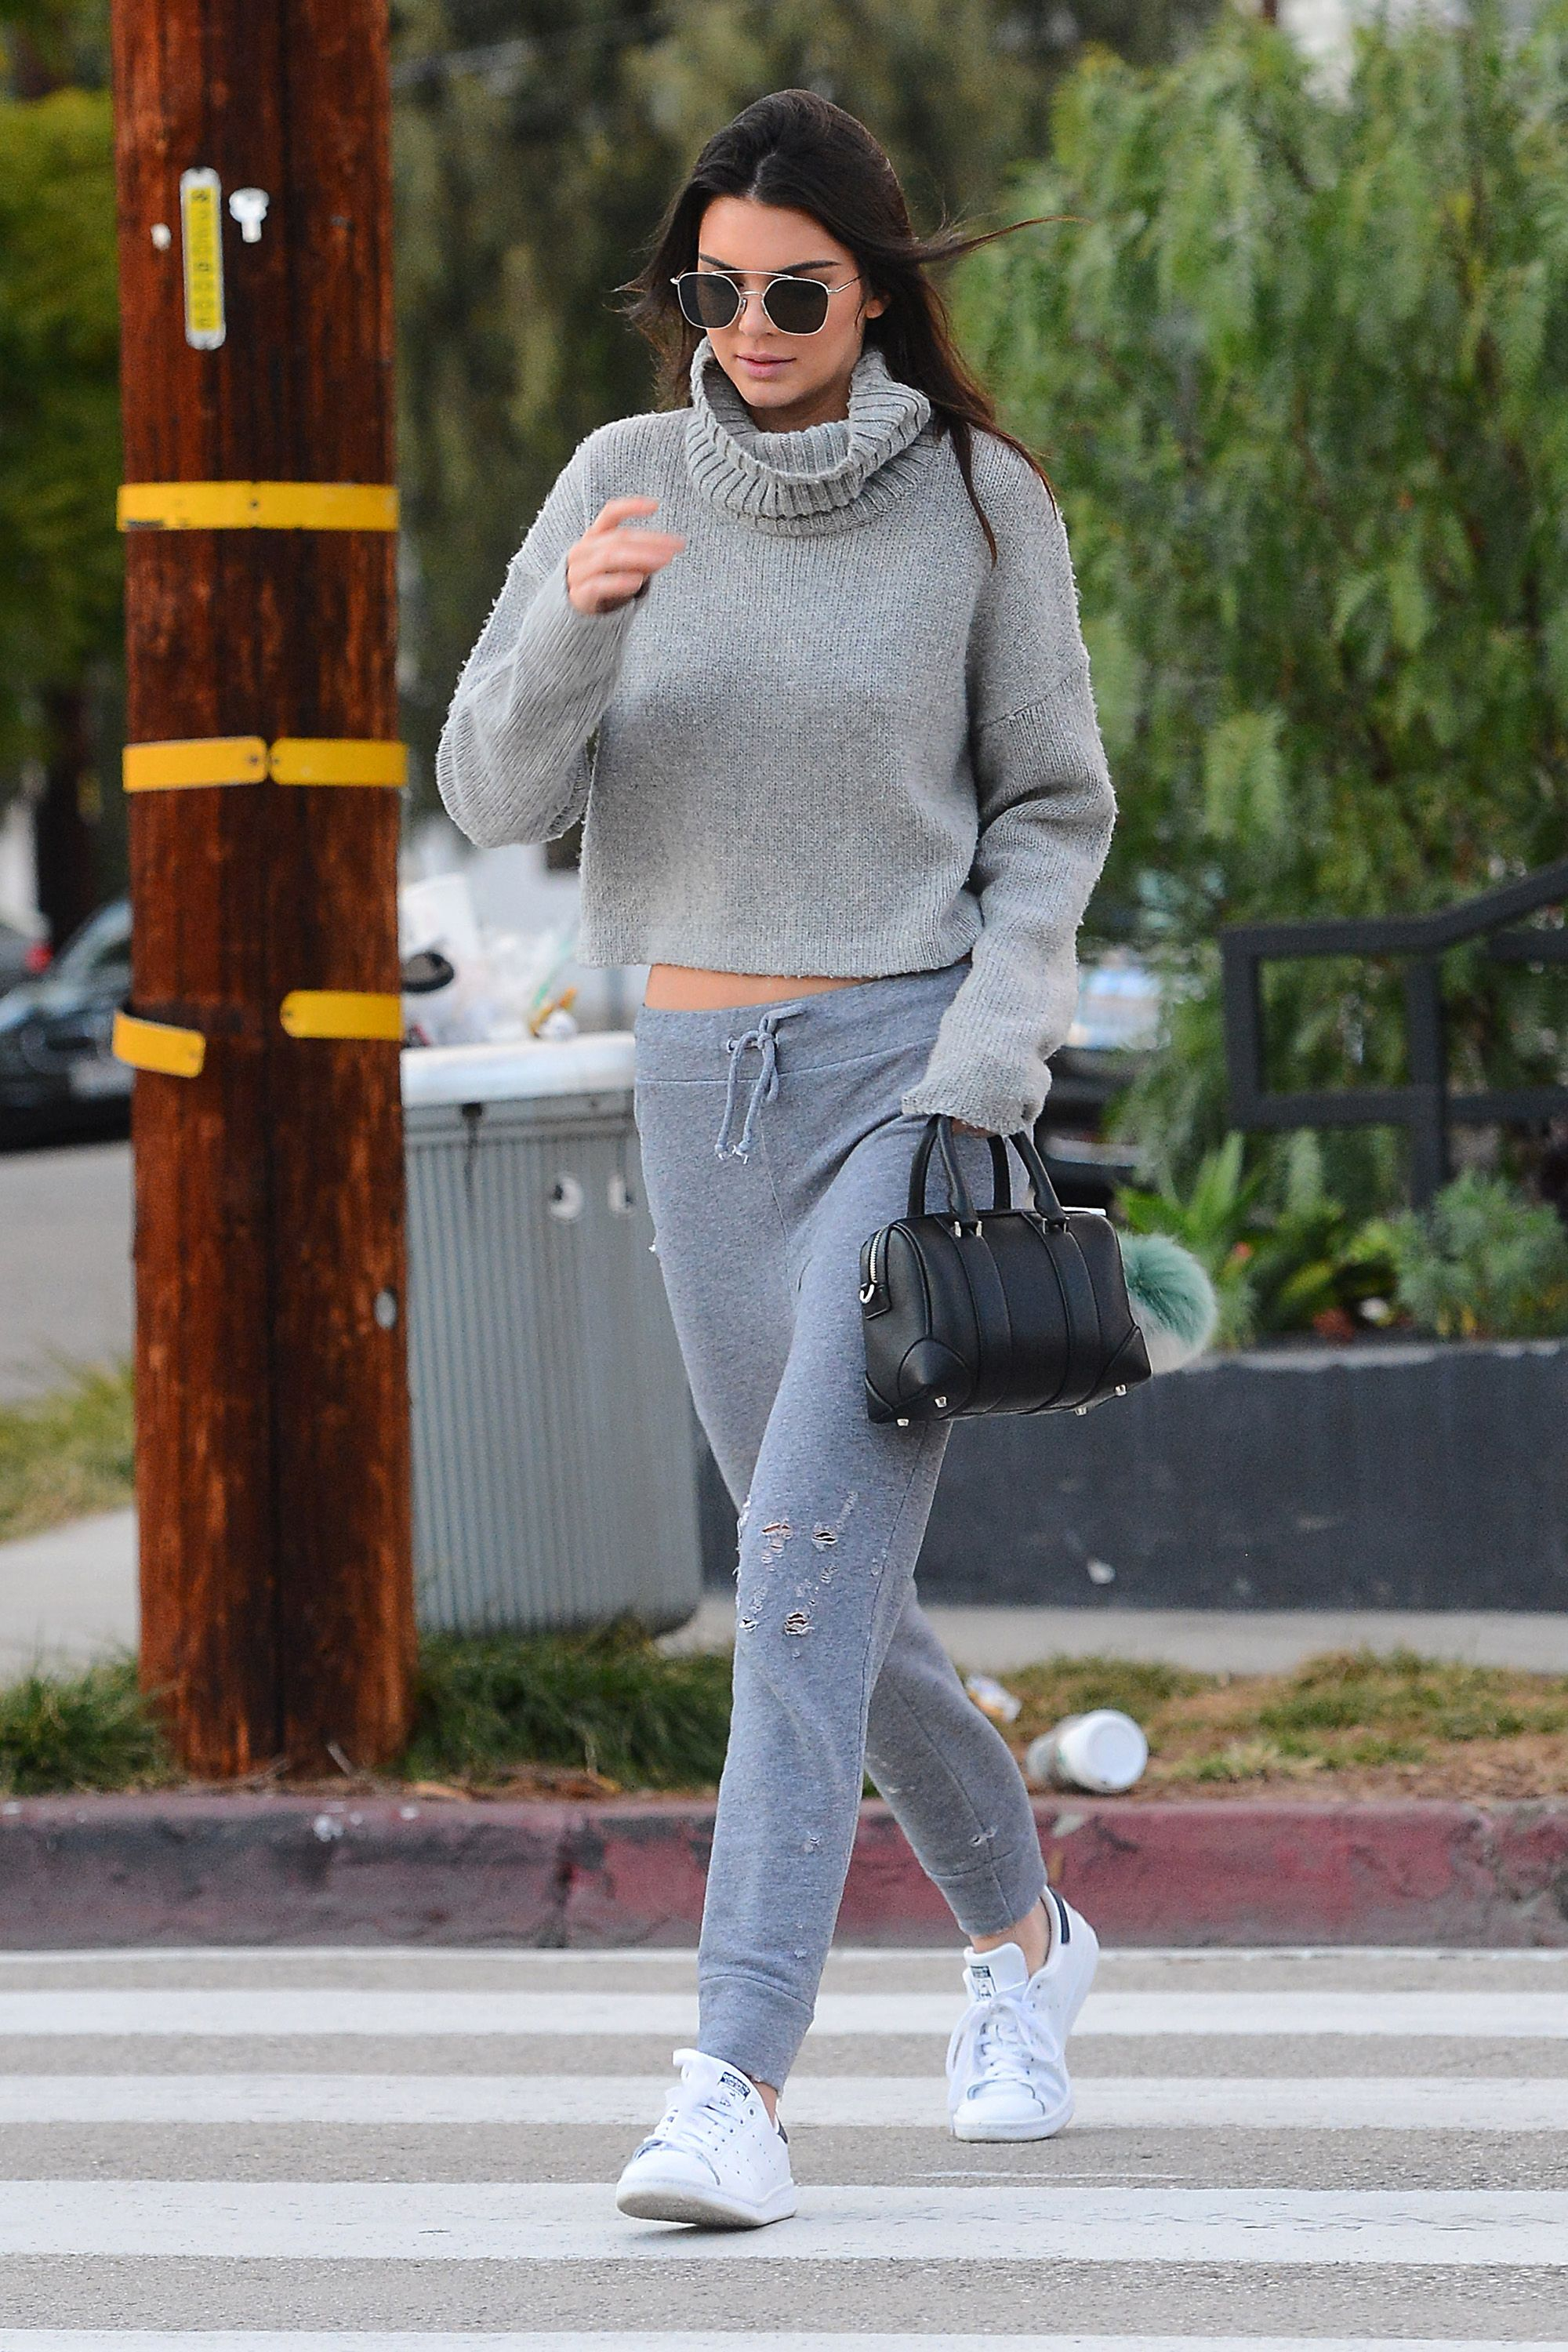 d4fd1d4d0 50 Turtleneck Outfits for a Chic Winter Look - How To Wear A ...